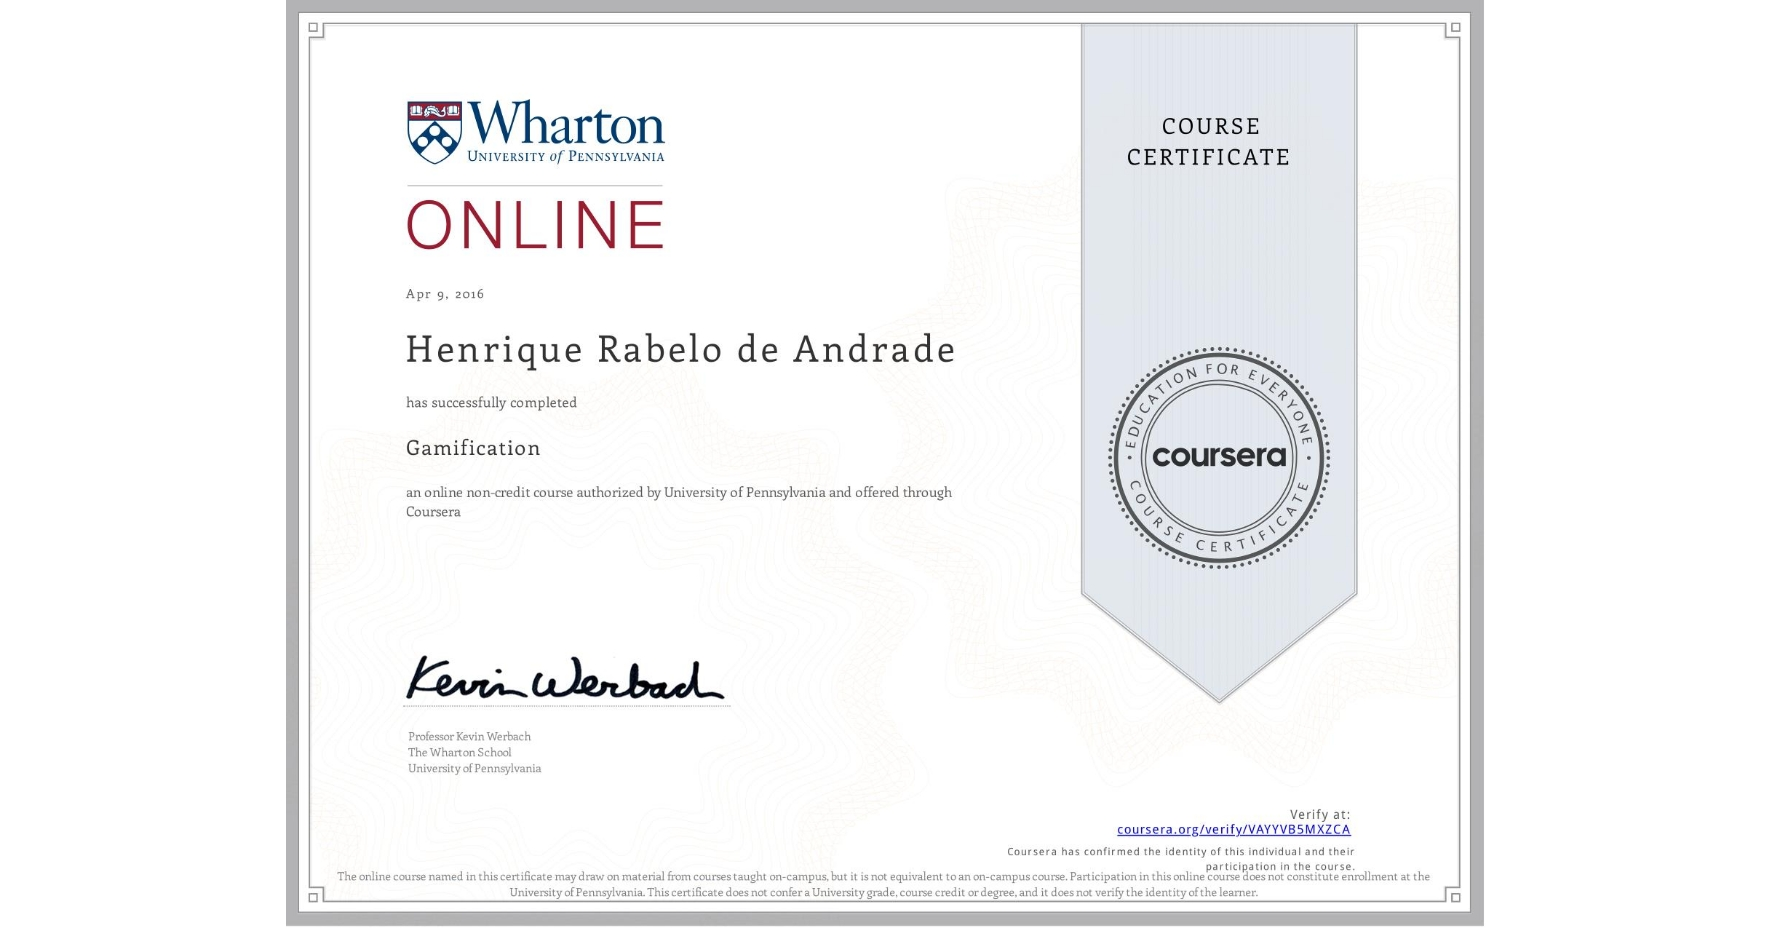 View certificate for Henrique Rabelo de Andrade, Gamification, an online non-credit course authorized by University of Pennsylvania and offered through Coursera